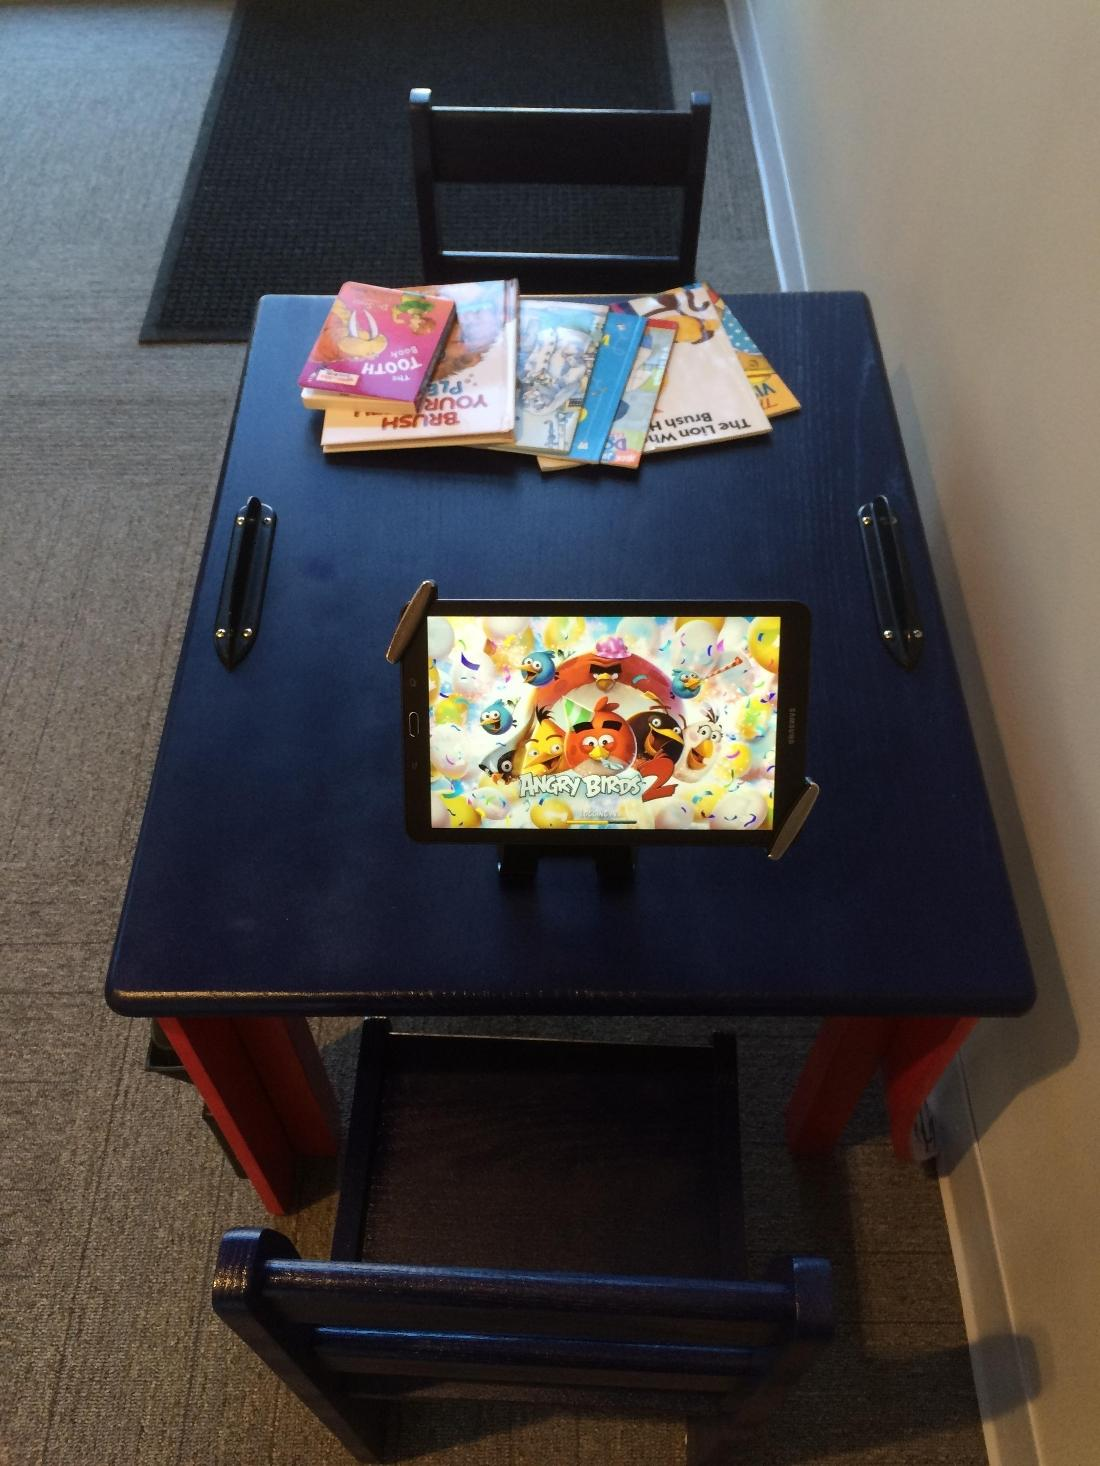 Tablet, books, and games for the kids!